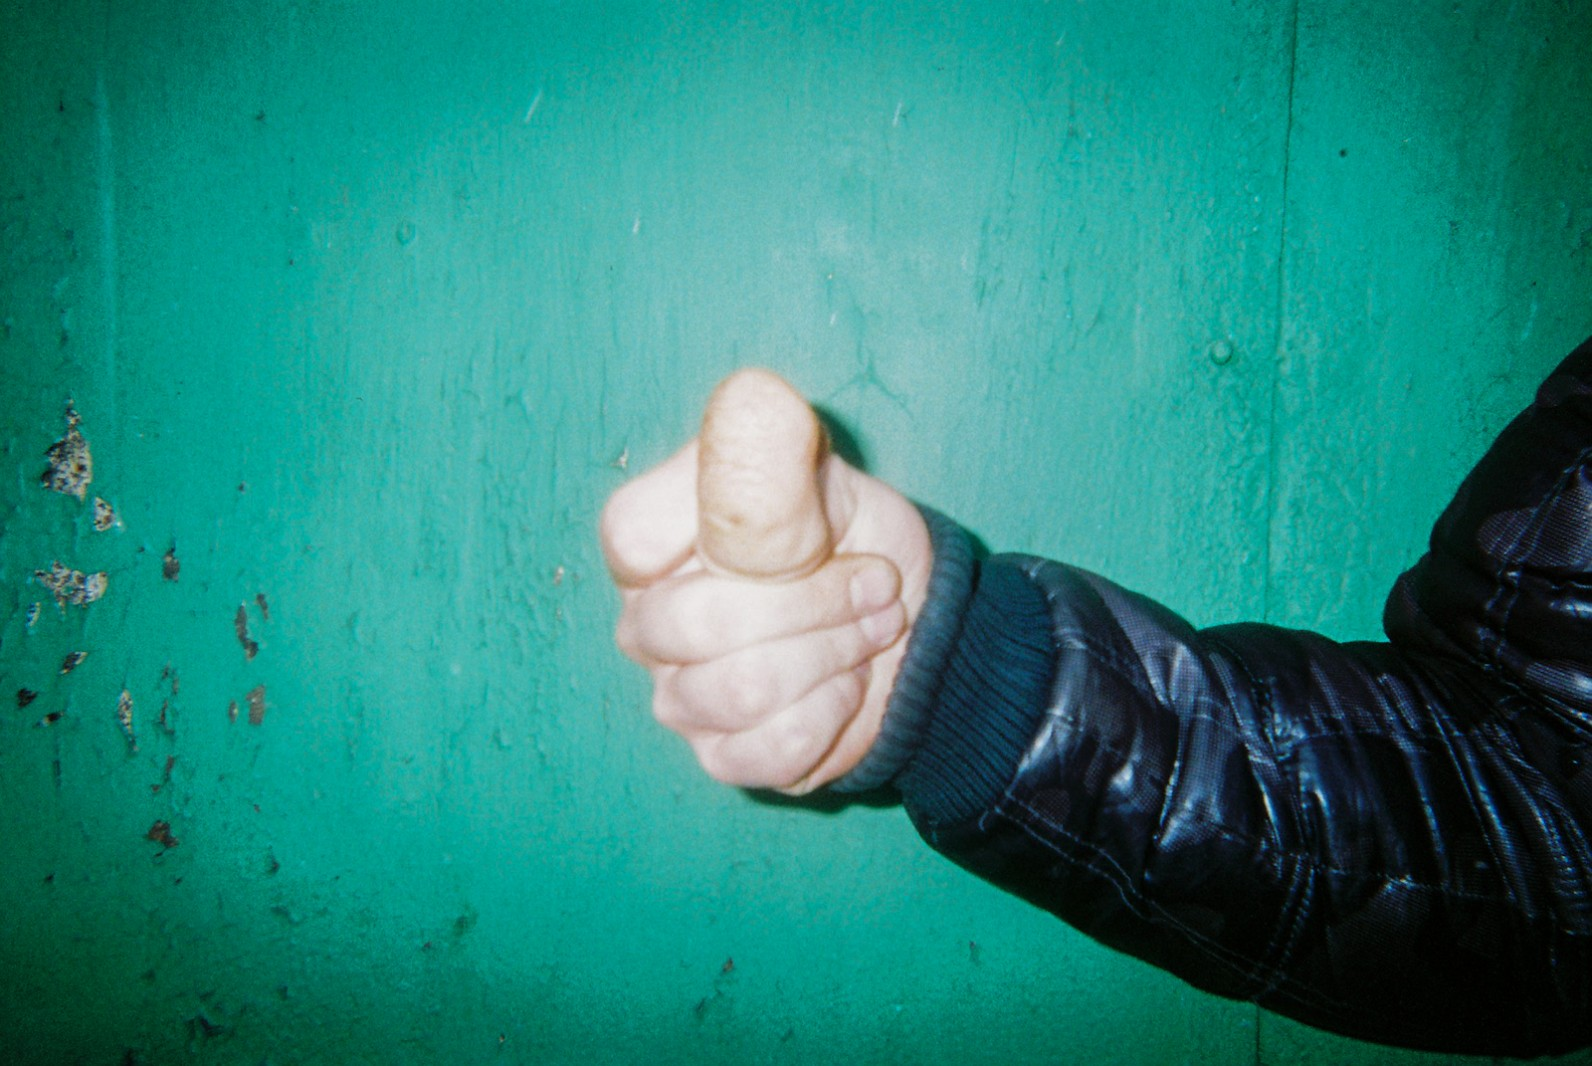 A photograph of a man's thumb south of the Chernobyl Exclusion Zone